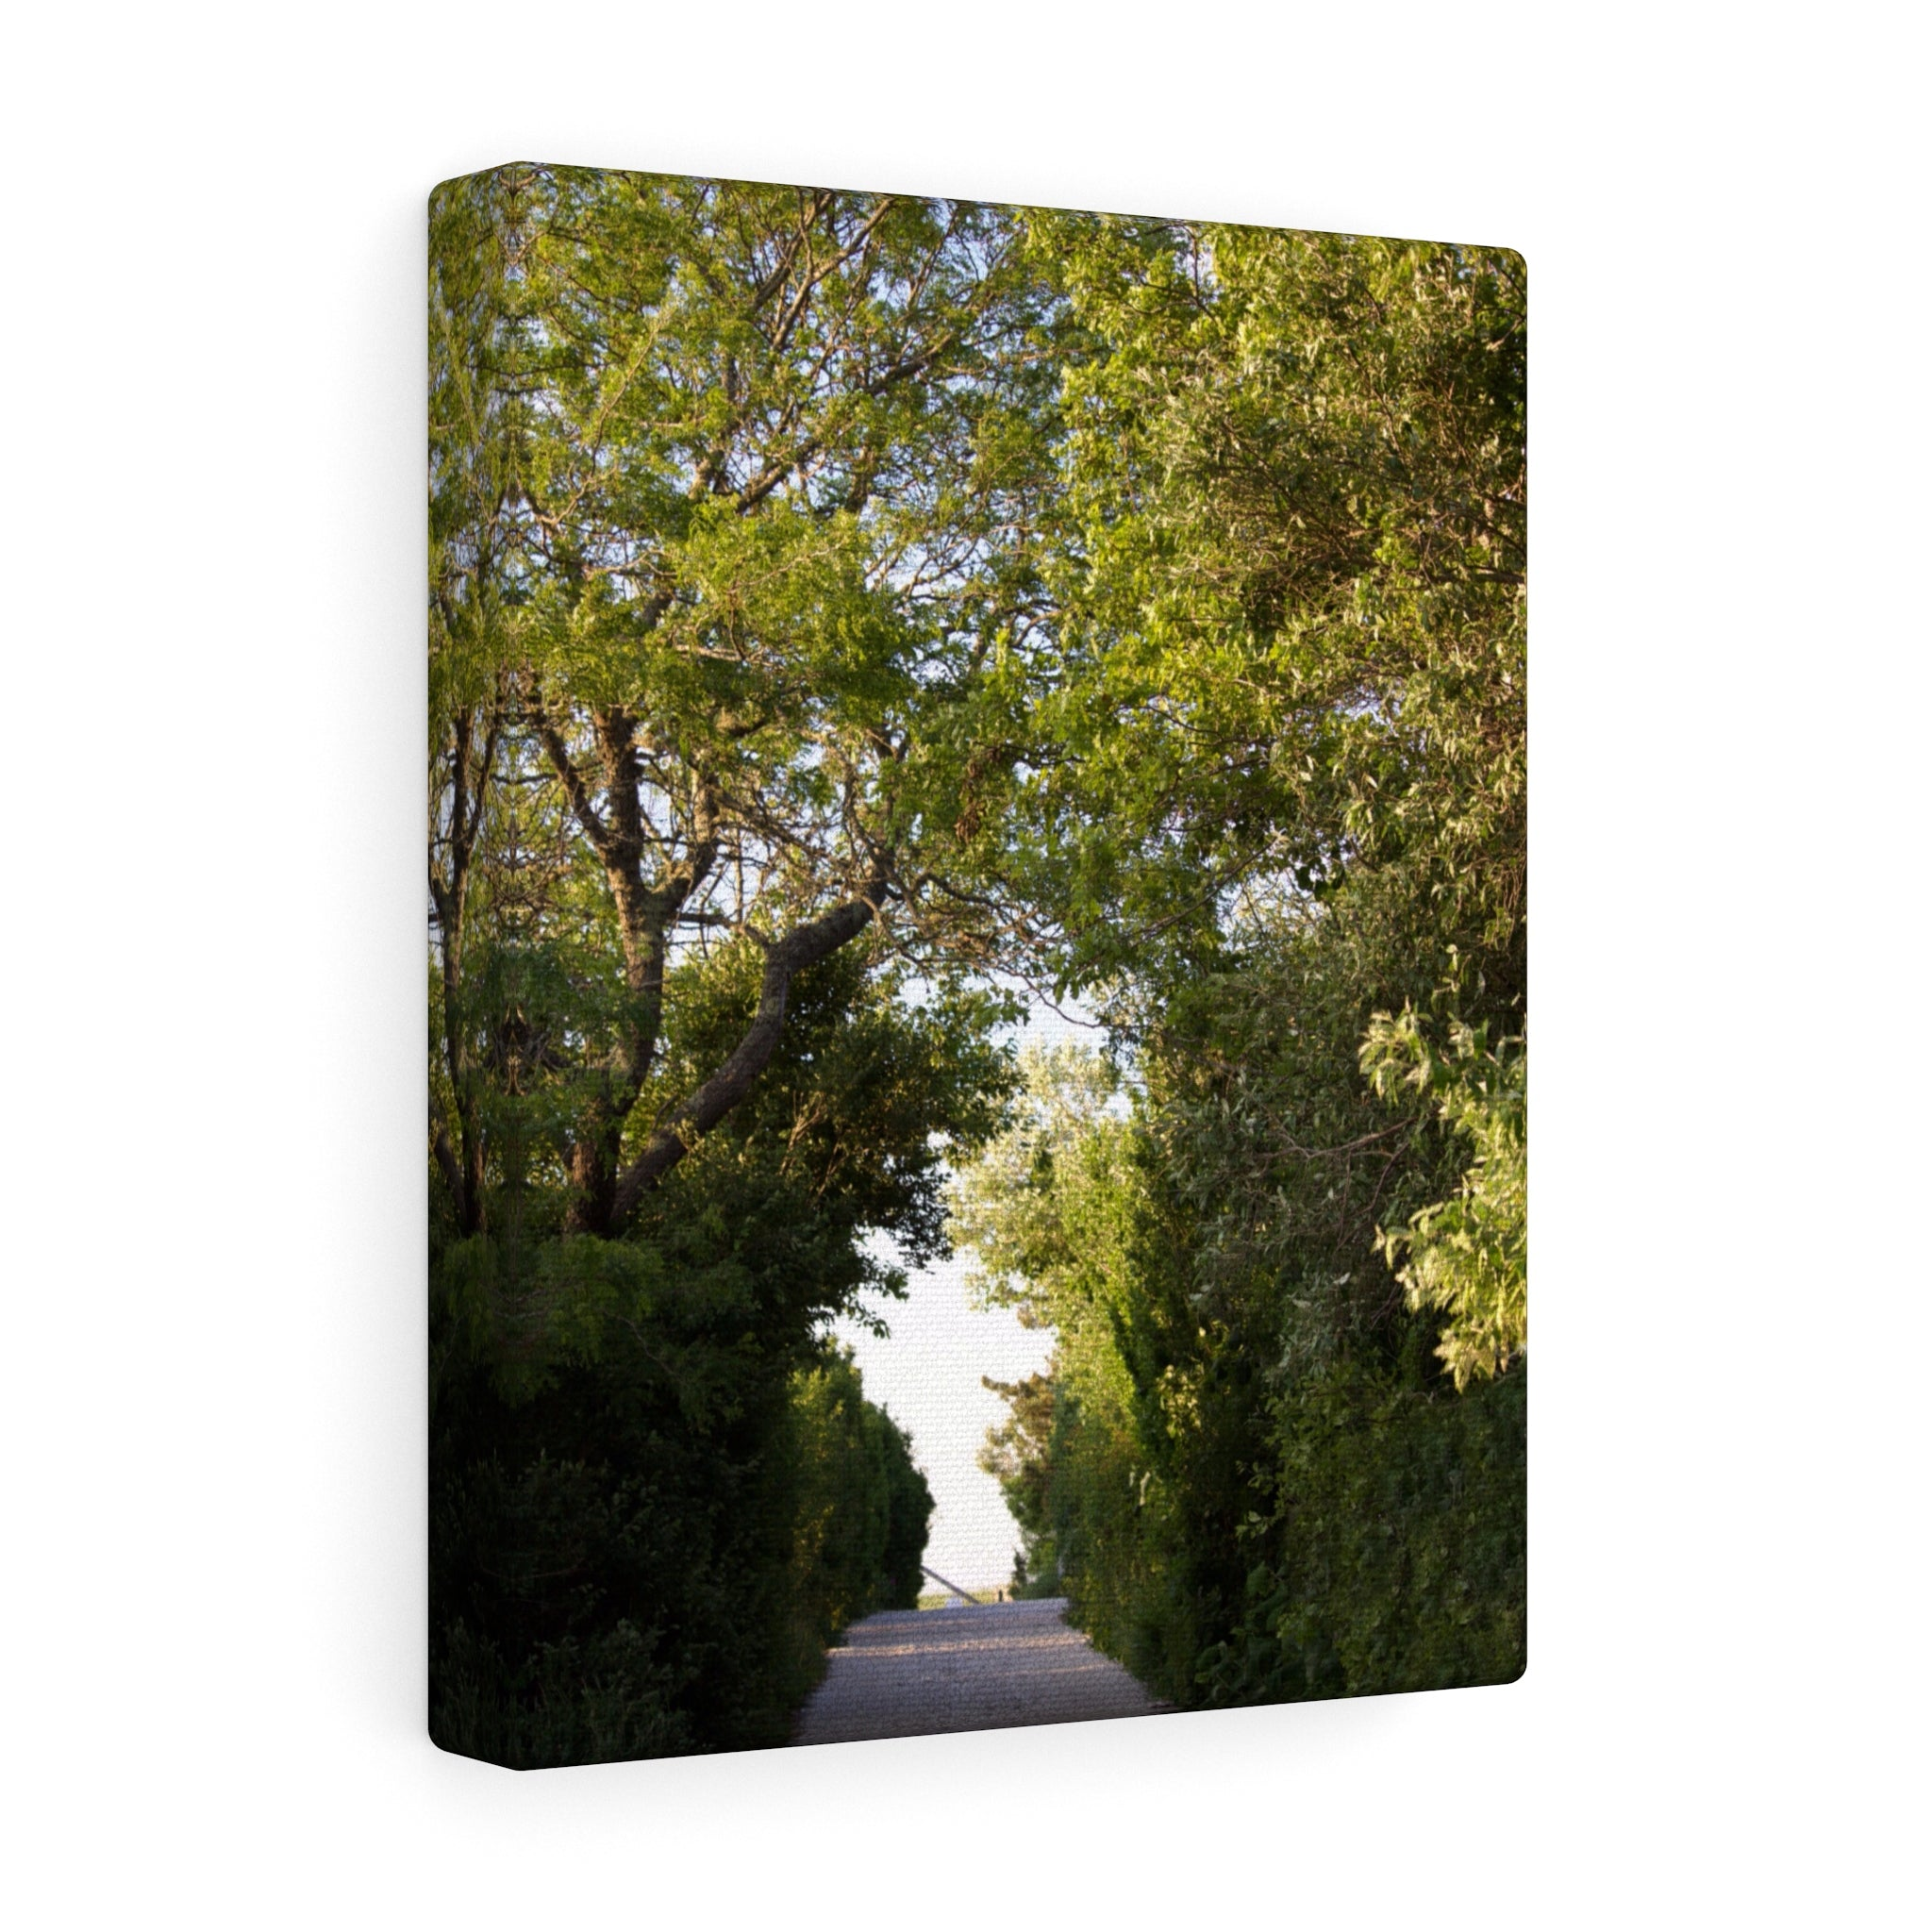 The Secluded Beach Path Canvas Gallery Wrap